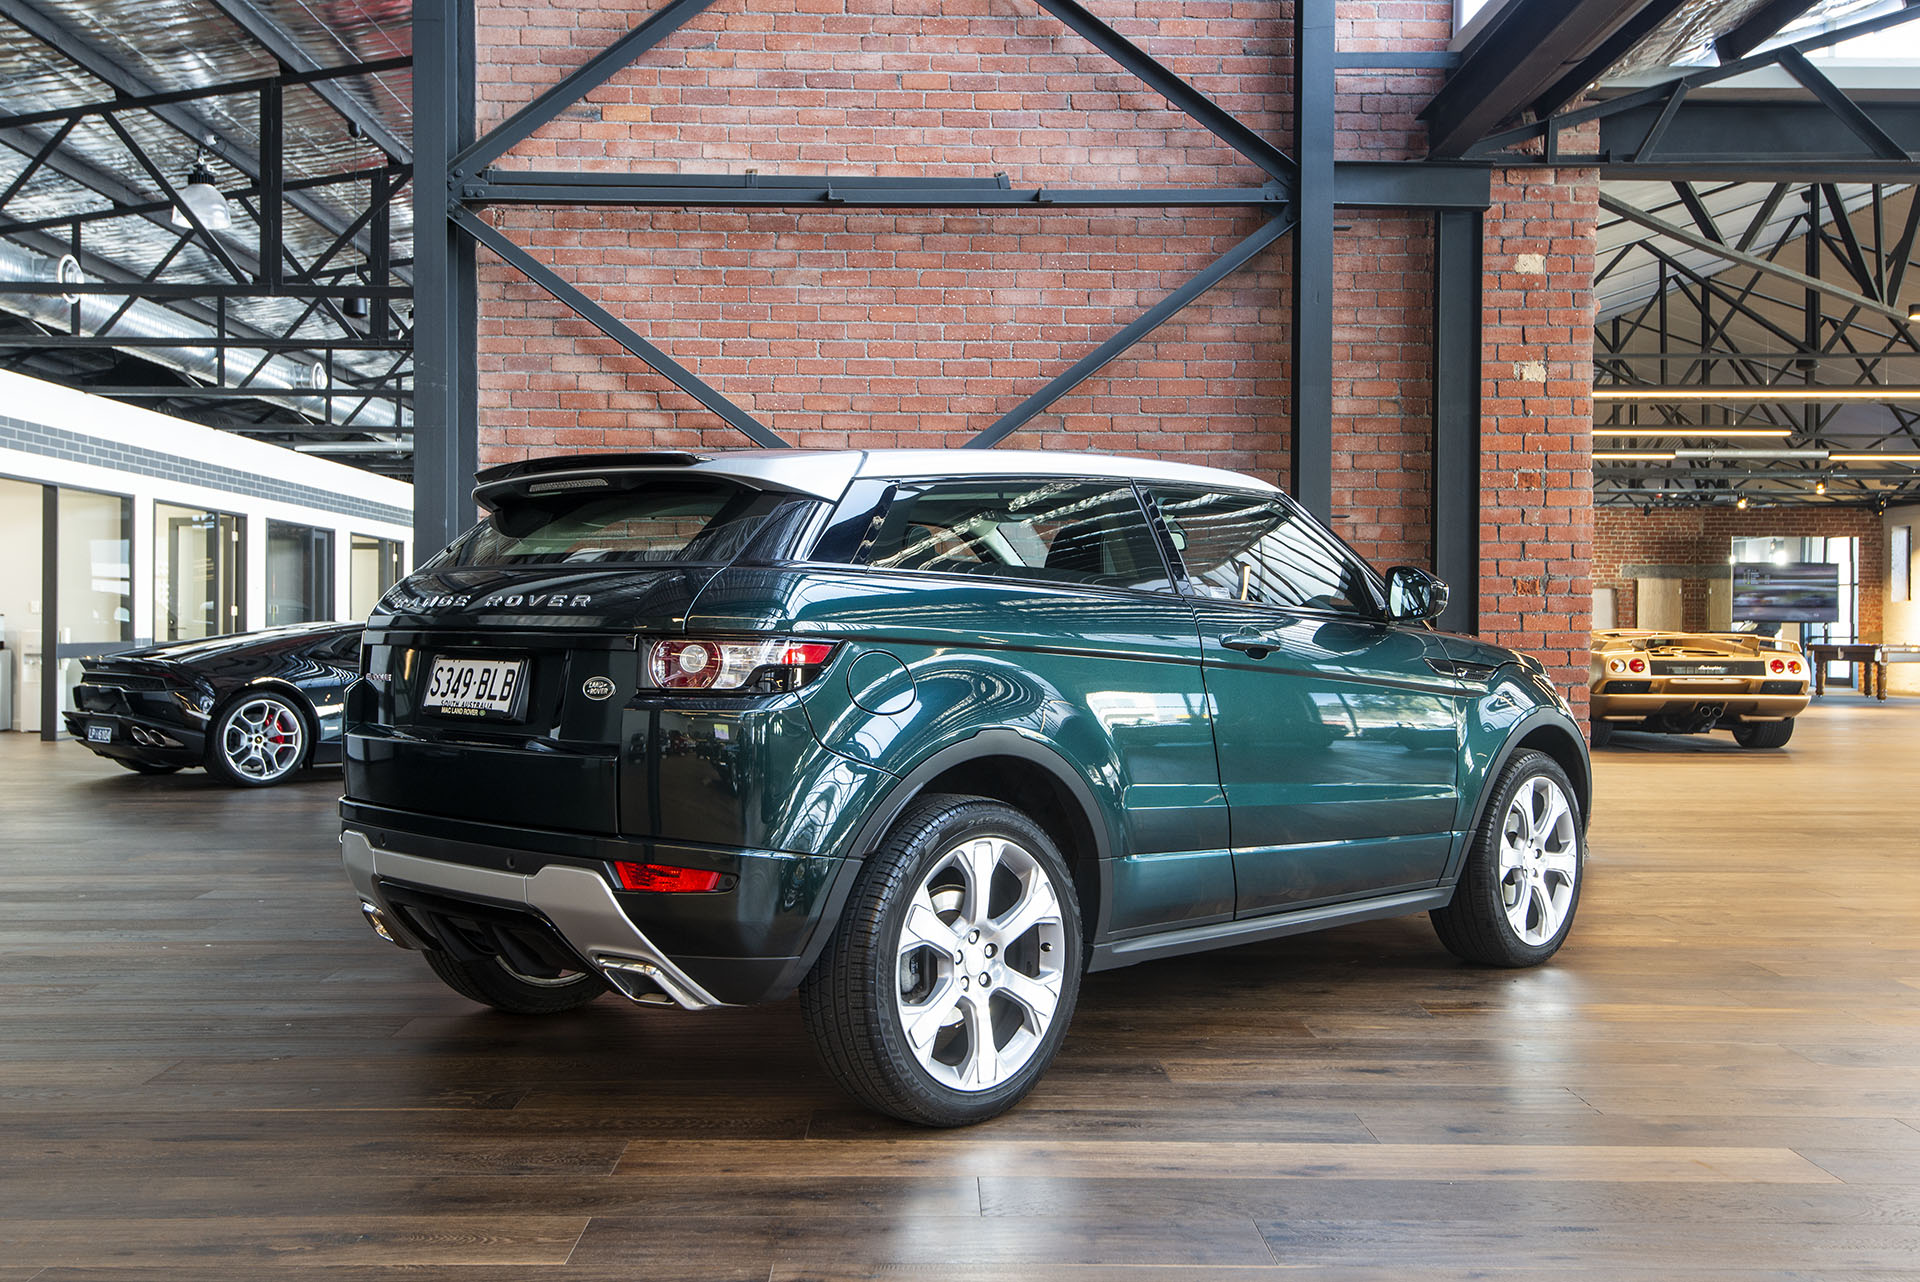 2014 land rover range rover evoque coupe richmonds classic and prestige cars storage and. Black Bedroom Furniture Sets. Home Design Ideas